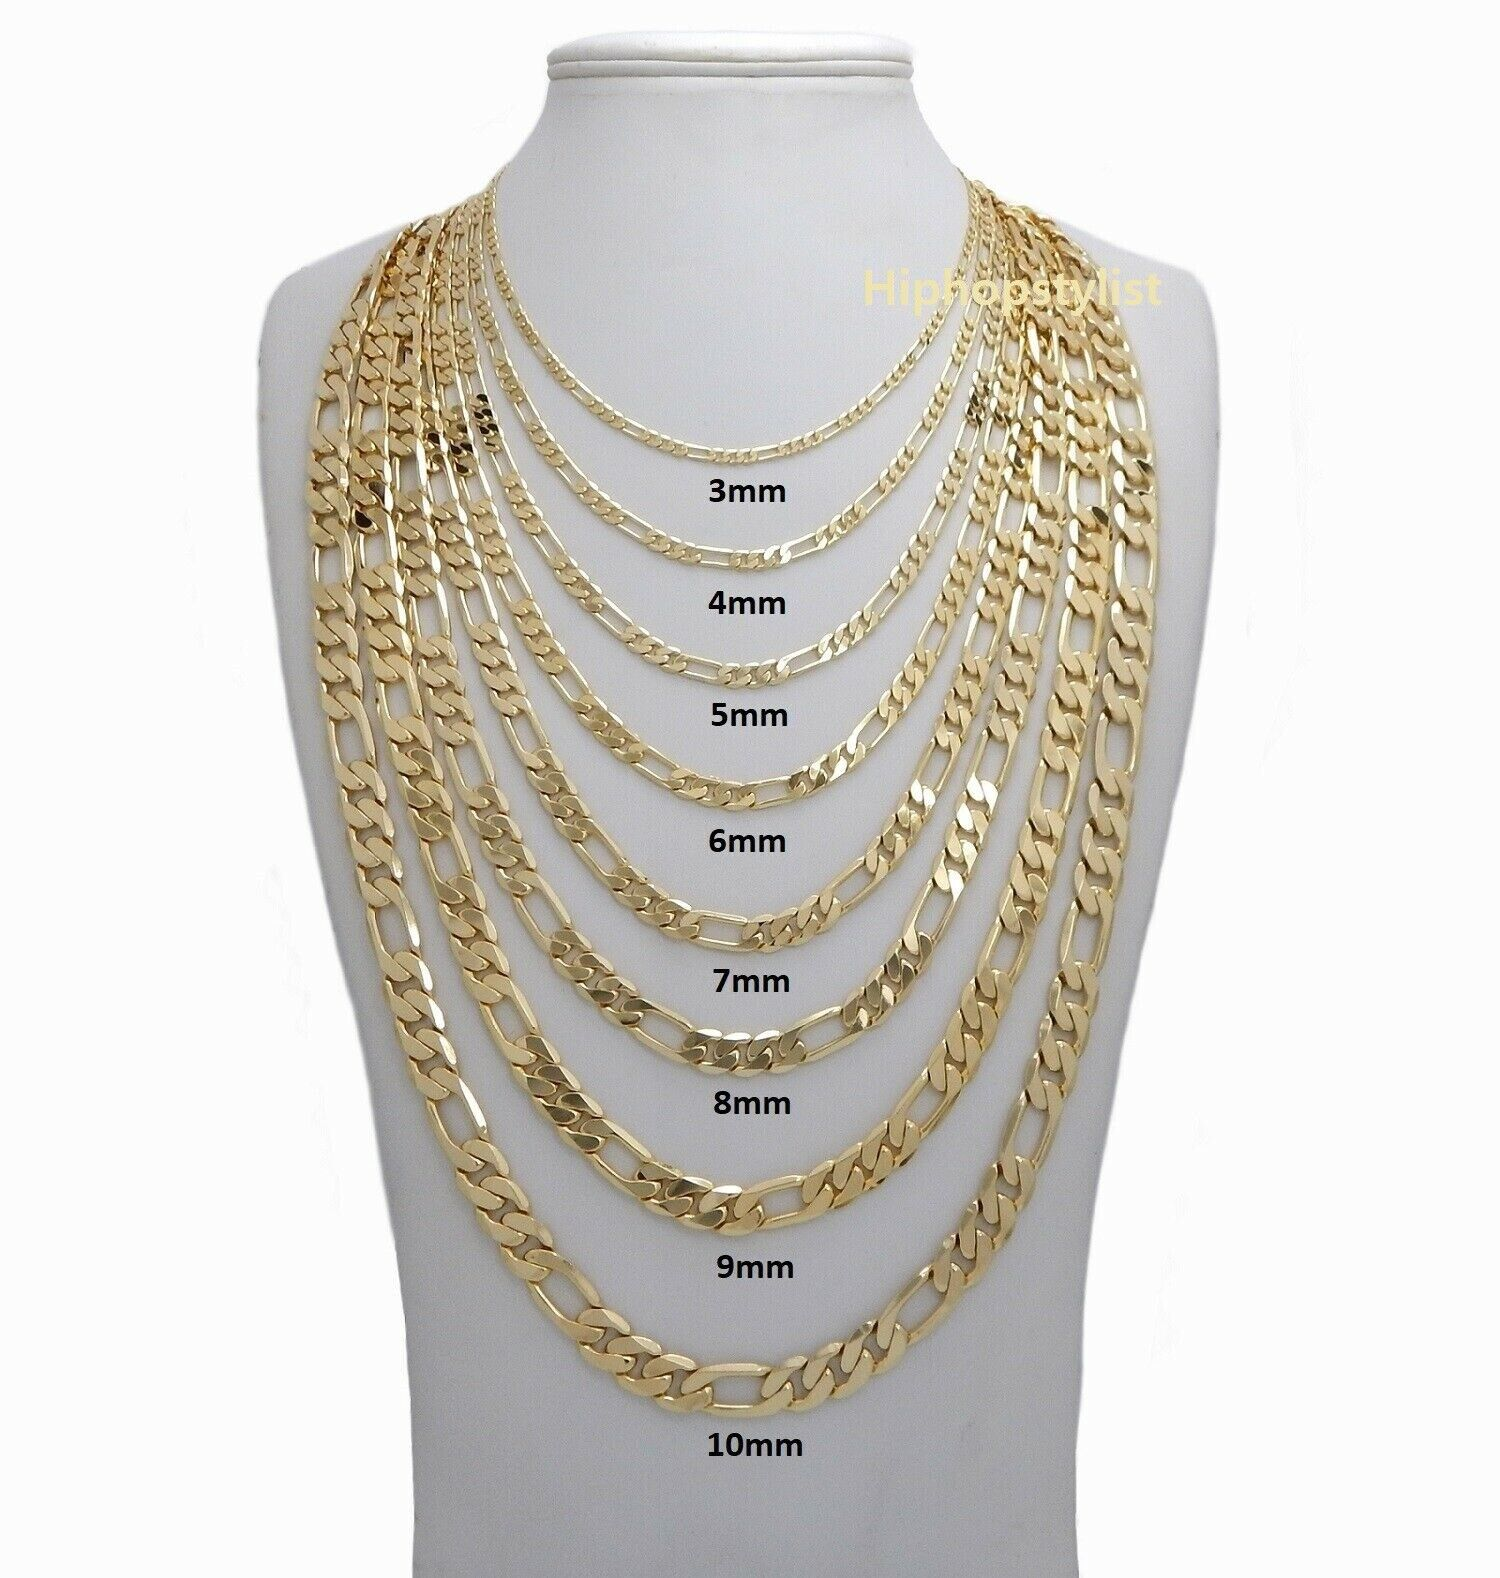 14k Italian Figaro Link Chain Necklace 3mm to 10mm Gold Plated 16